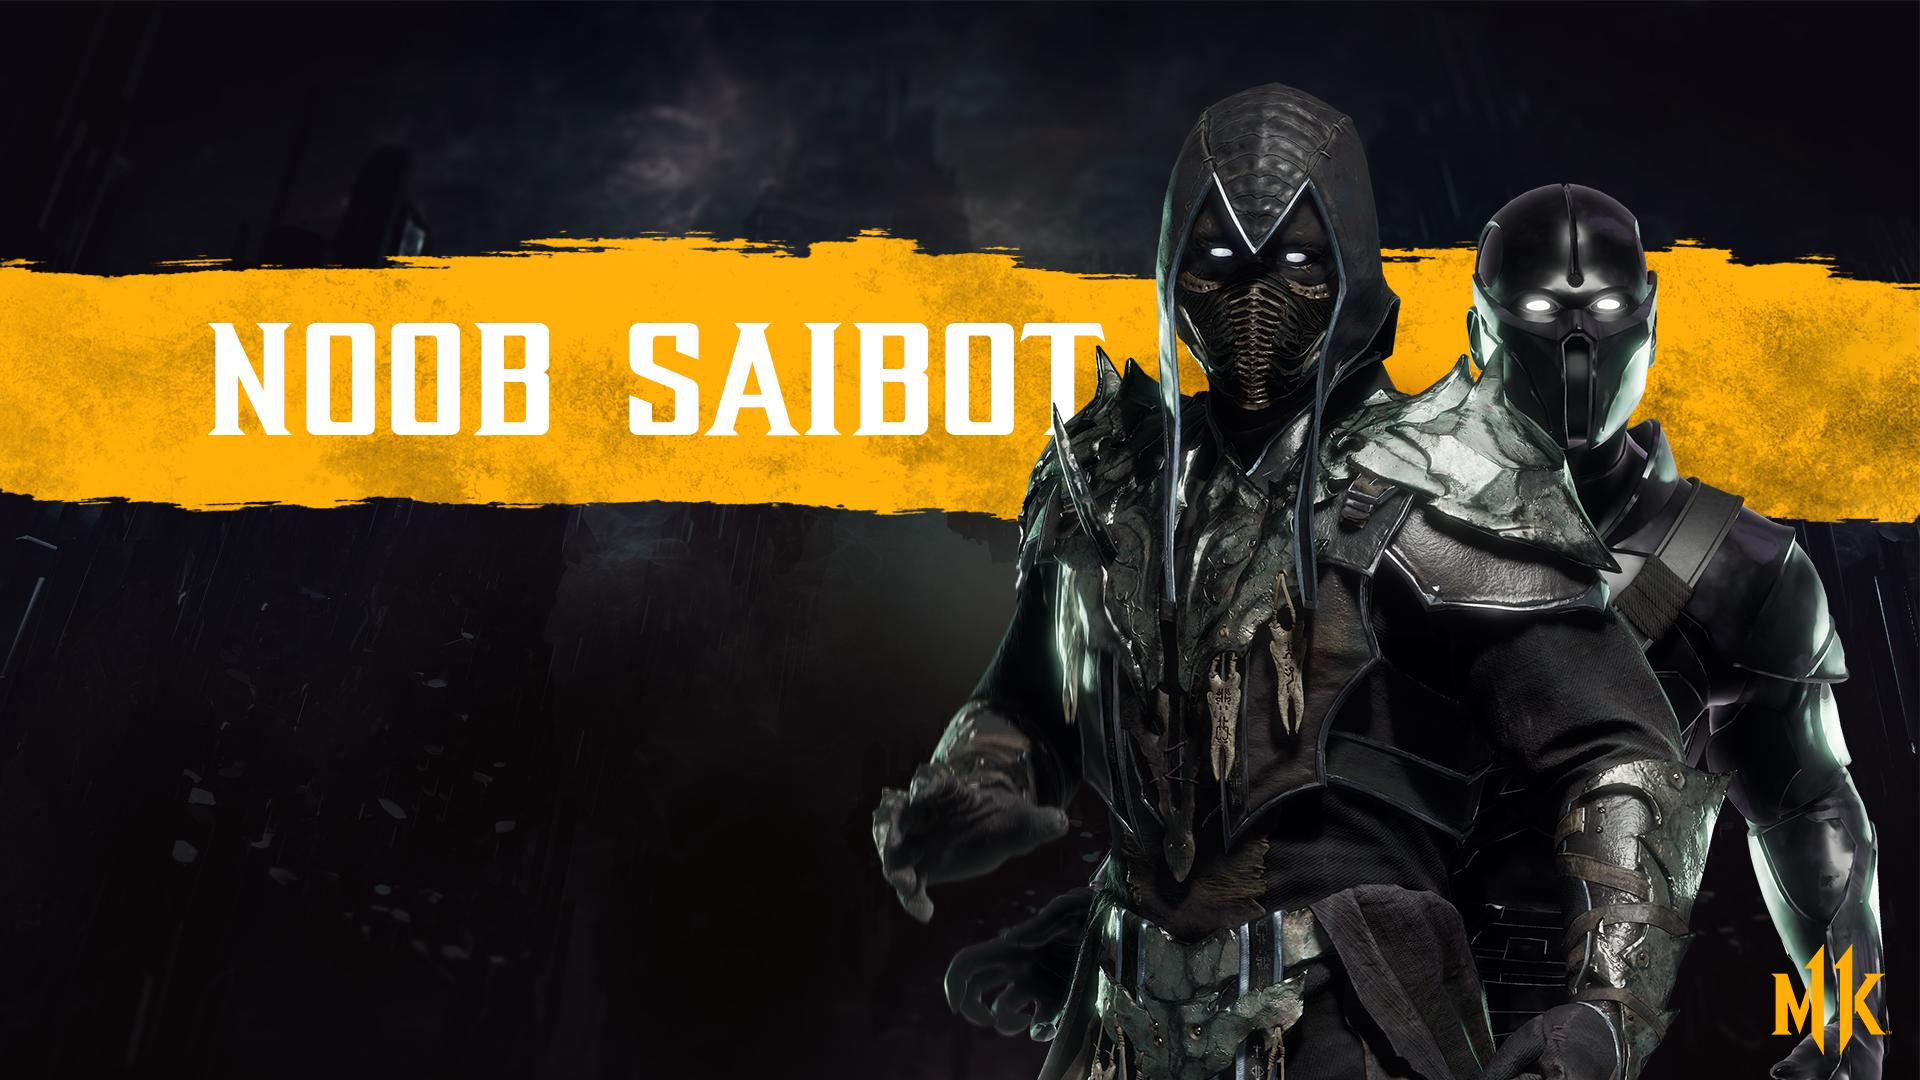 Mortal Kombat 11 background - Noob Saibot